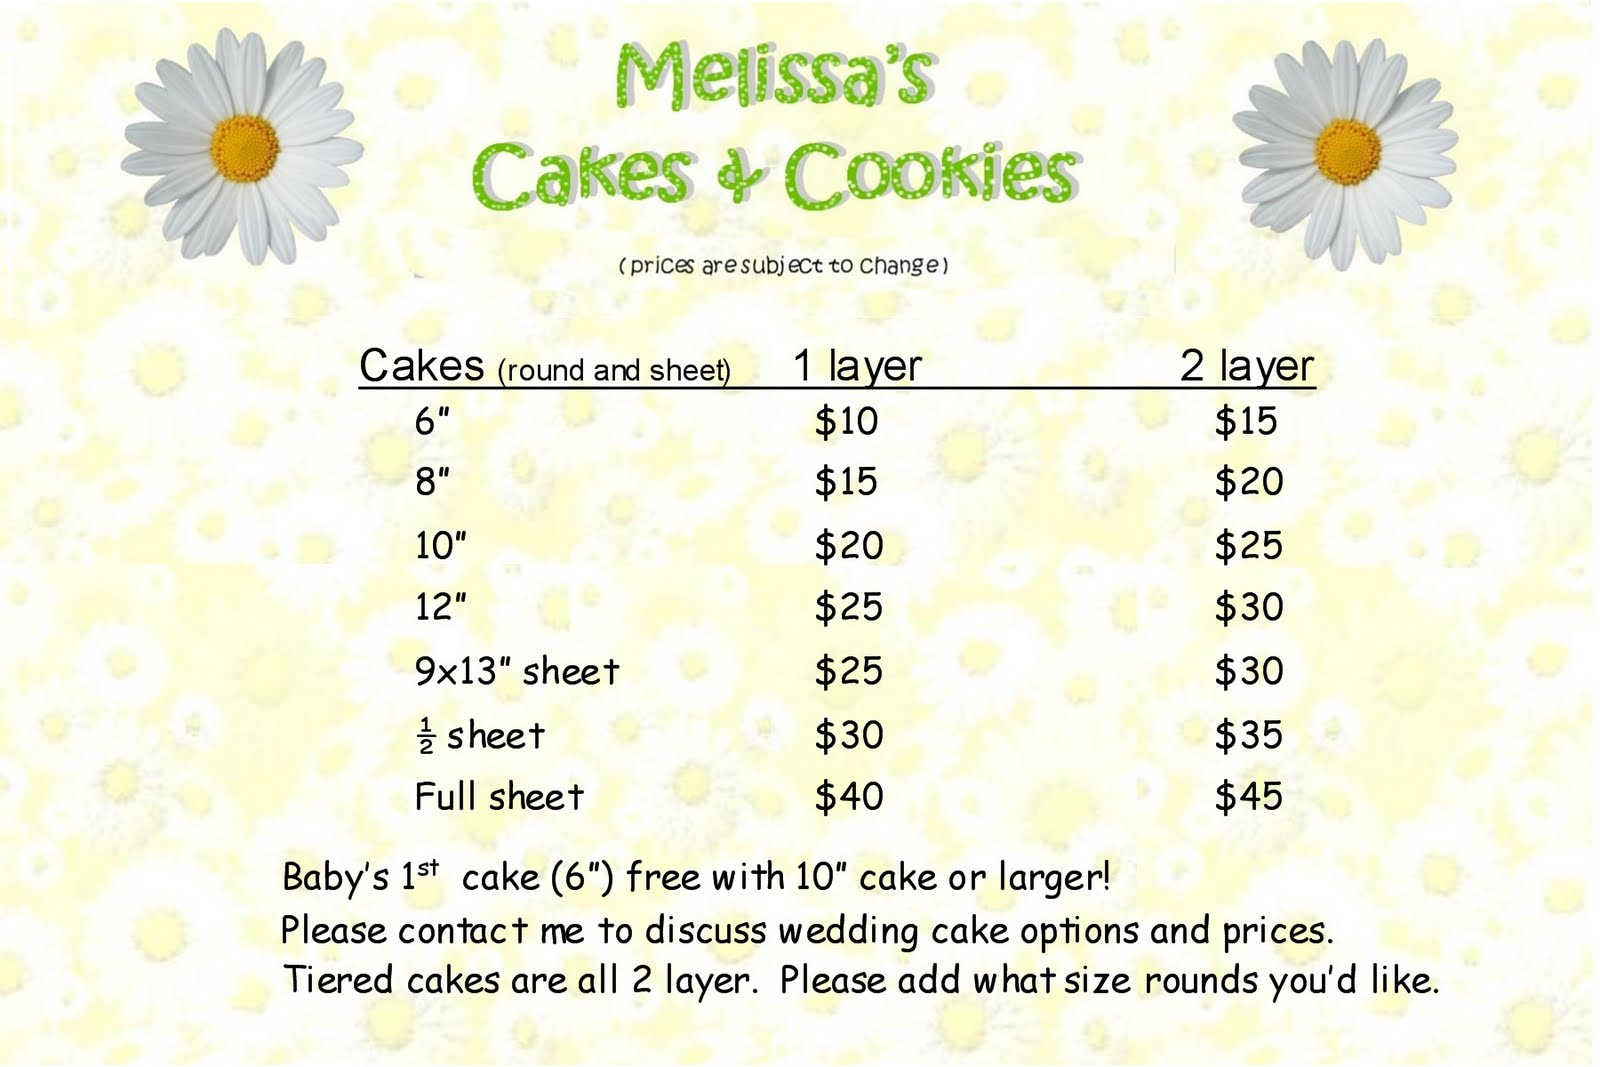 melissa 39 s cakes cookies menu and prices